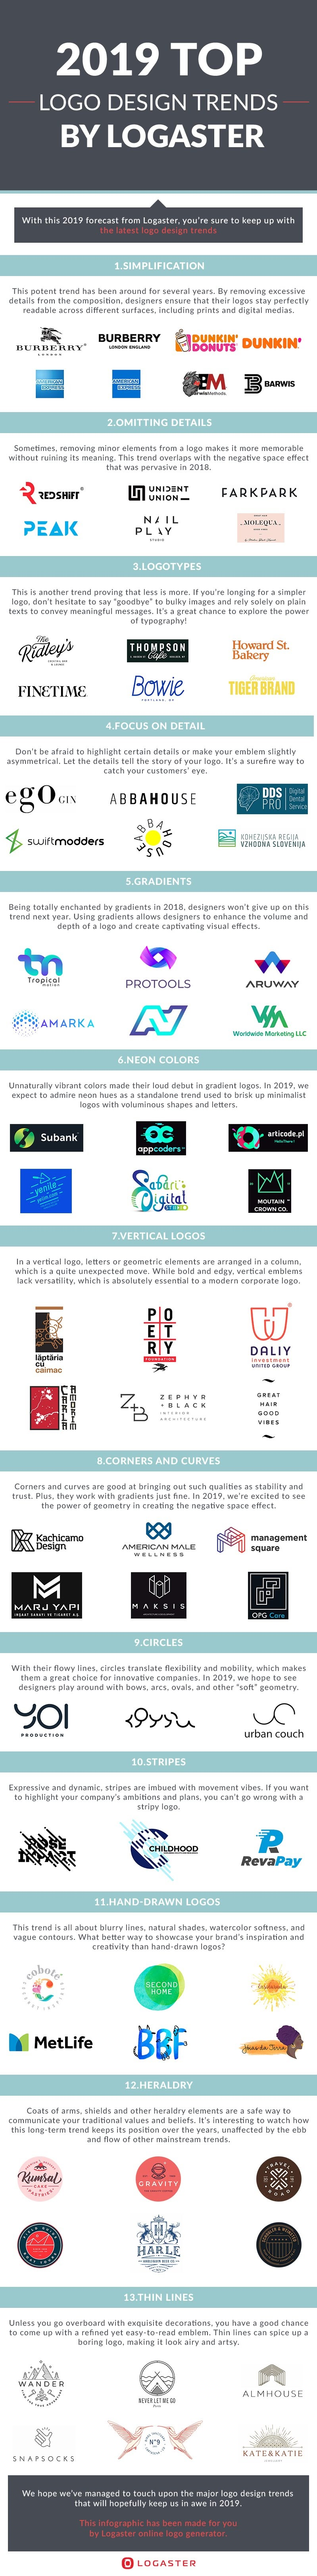 Top Logo Design Trends in 2019 #infographic